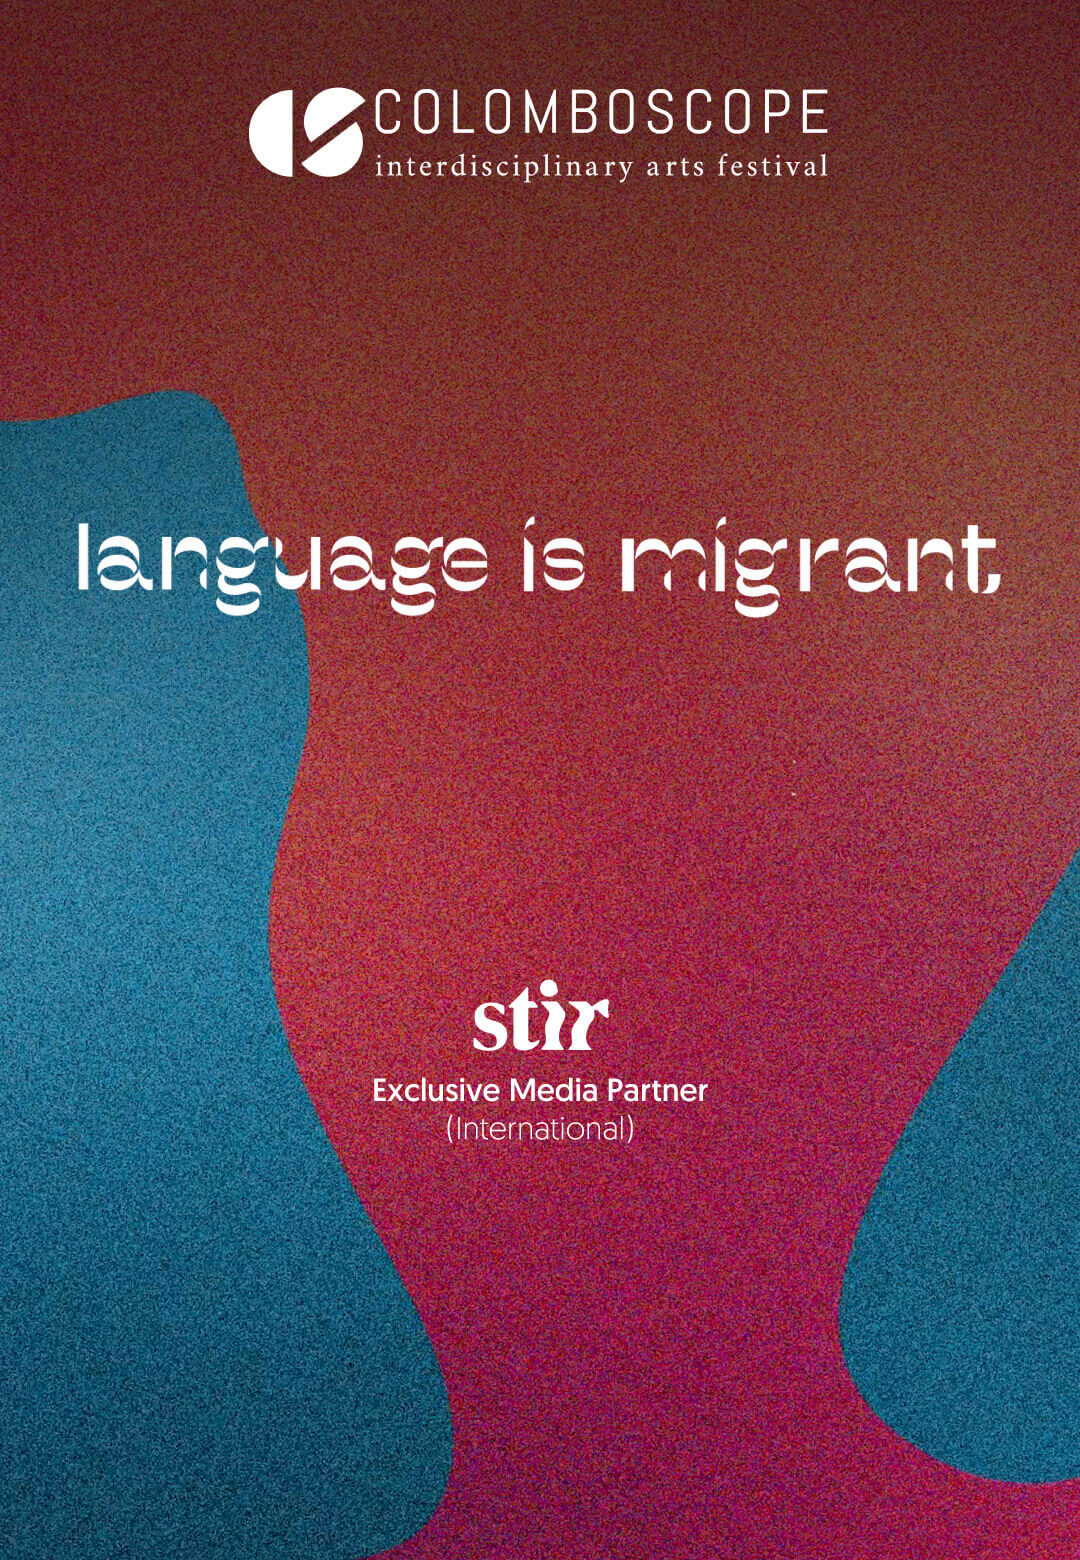 Colomboscope 2021 journeys from a poem-manifesto by Chilean artist and poet, Cecilia Vicuña, titled Language is Migrant   Colomboscope 2021   STIRworld